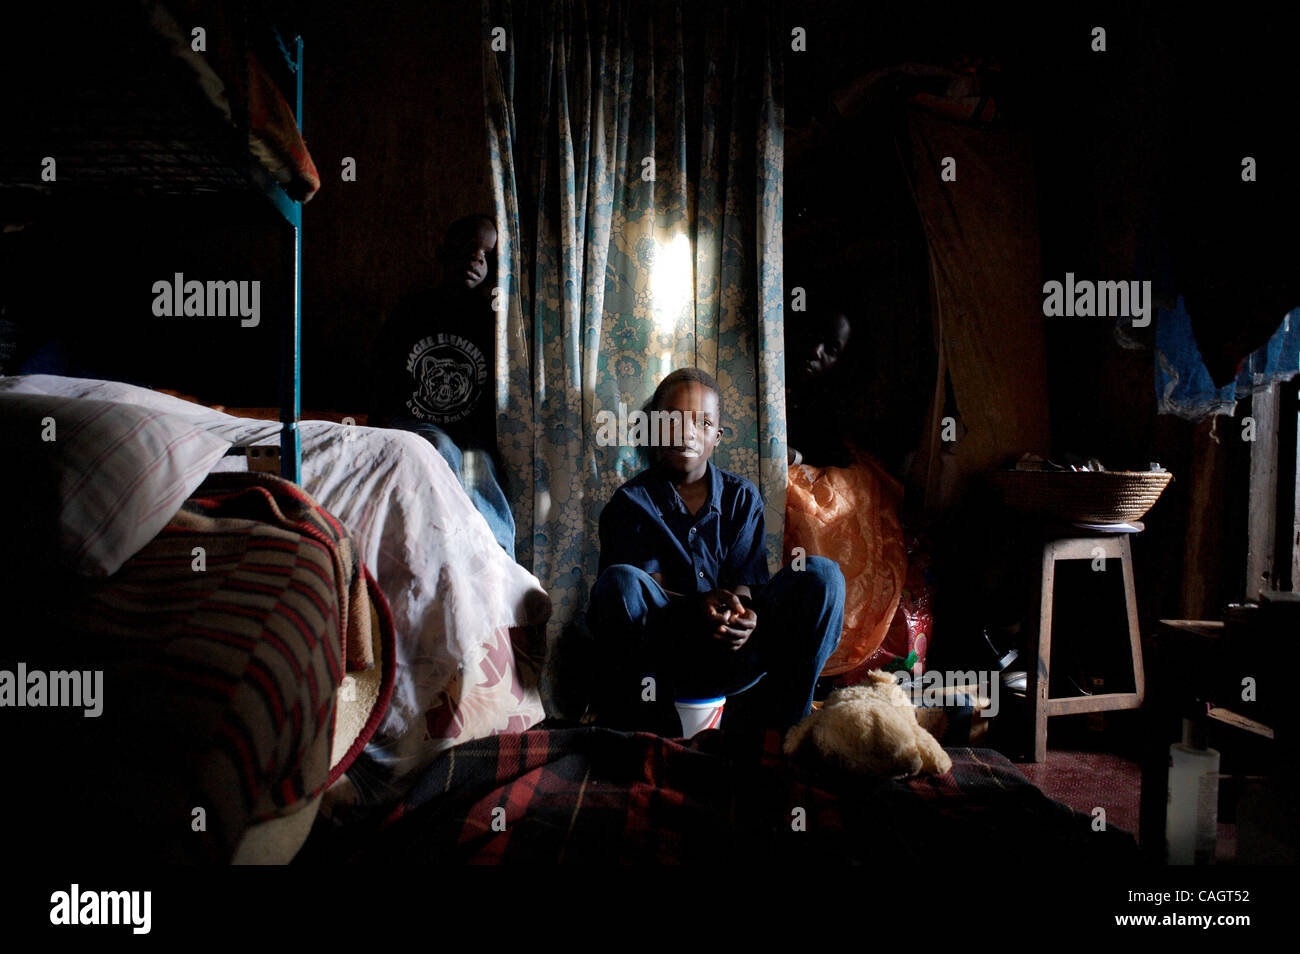 This is 13 year-old Gideon Katulume, in the main bedroom of this house, where 3-5 children sleep on each mattress. - Stock Image